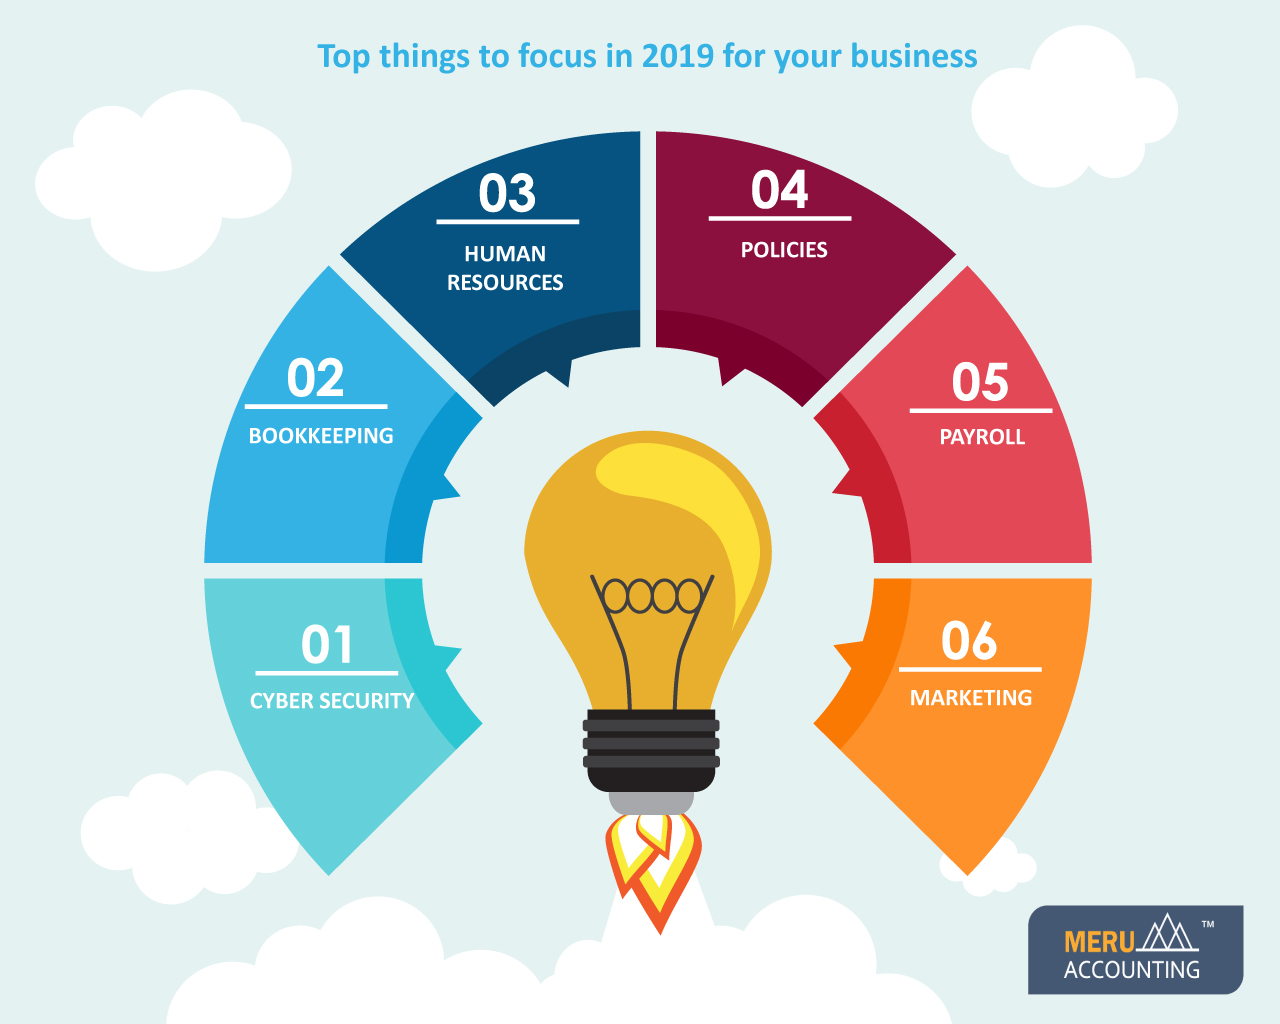 Top-things-to-focus-for-your-business